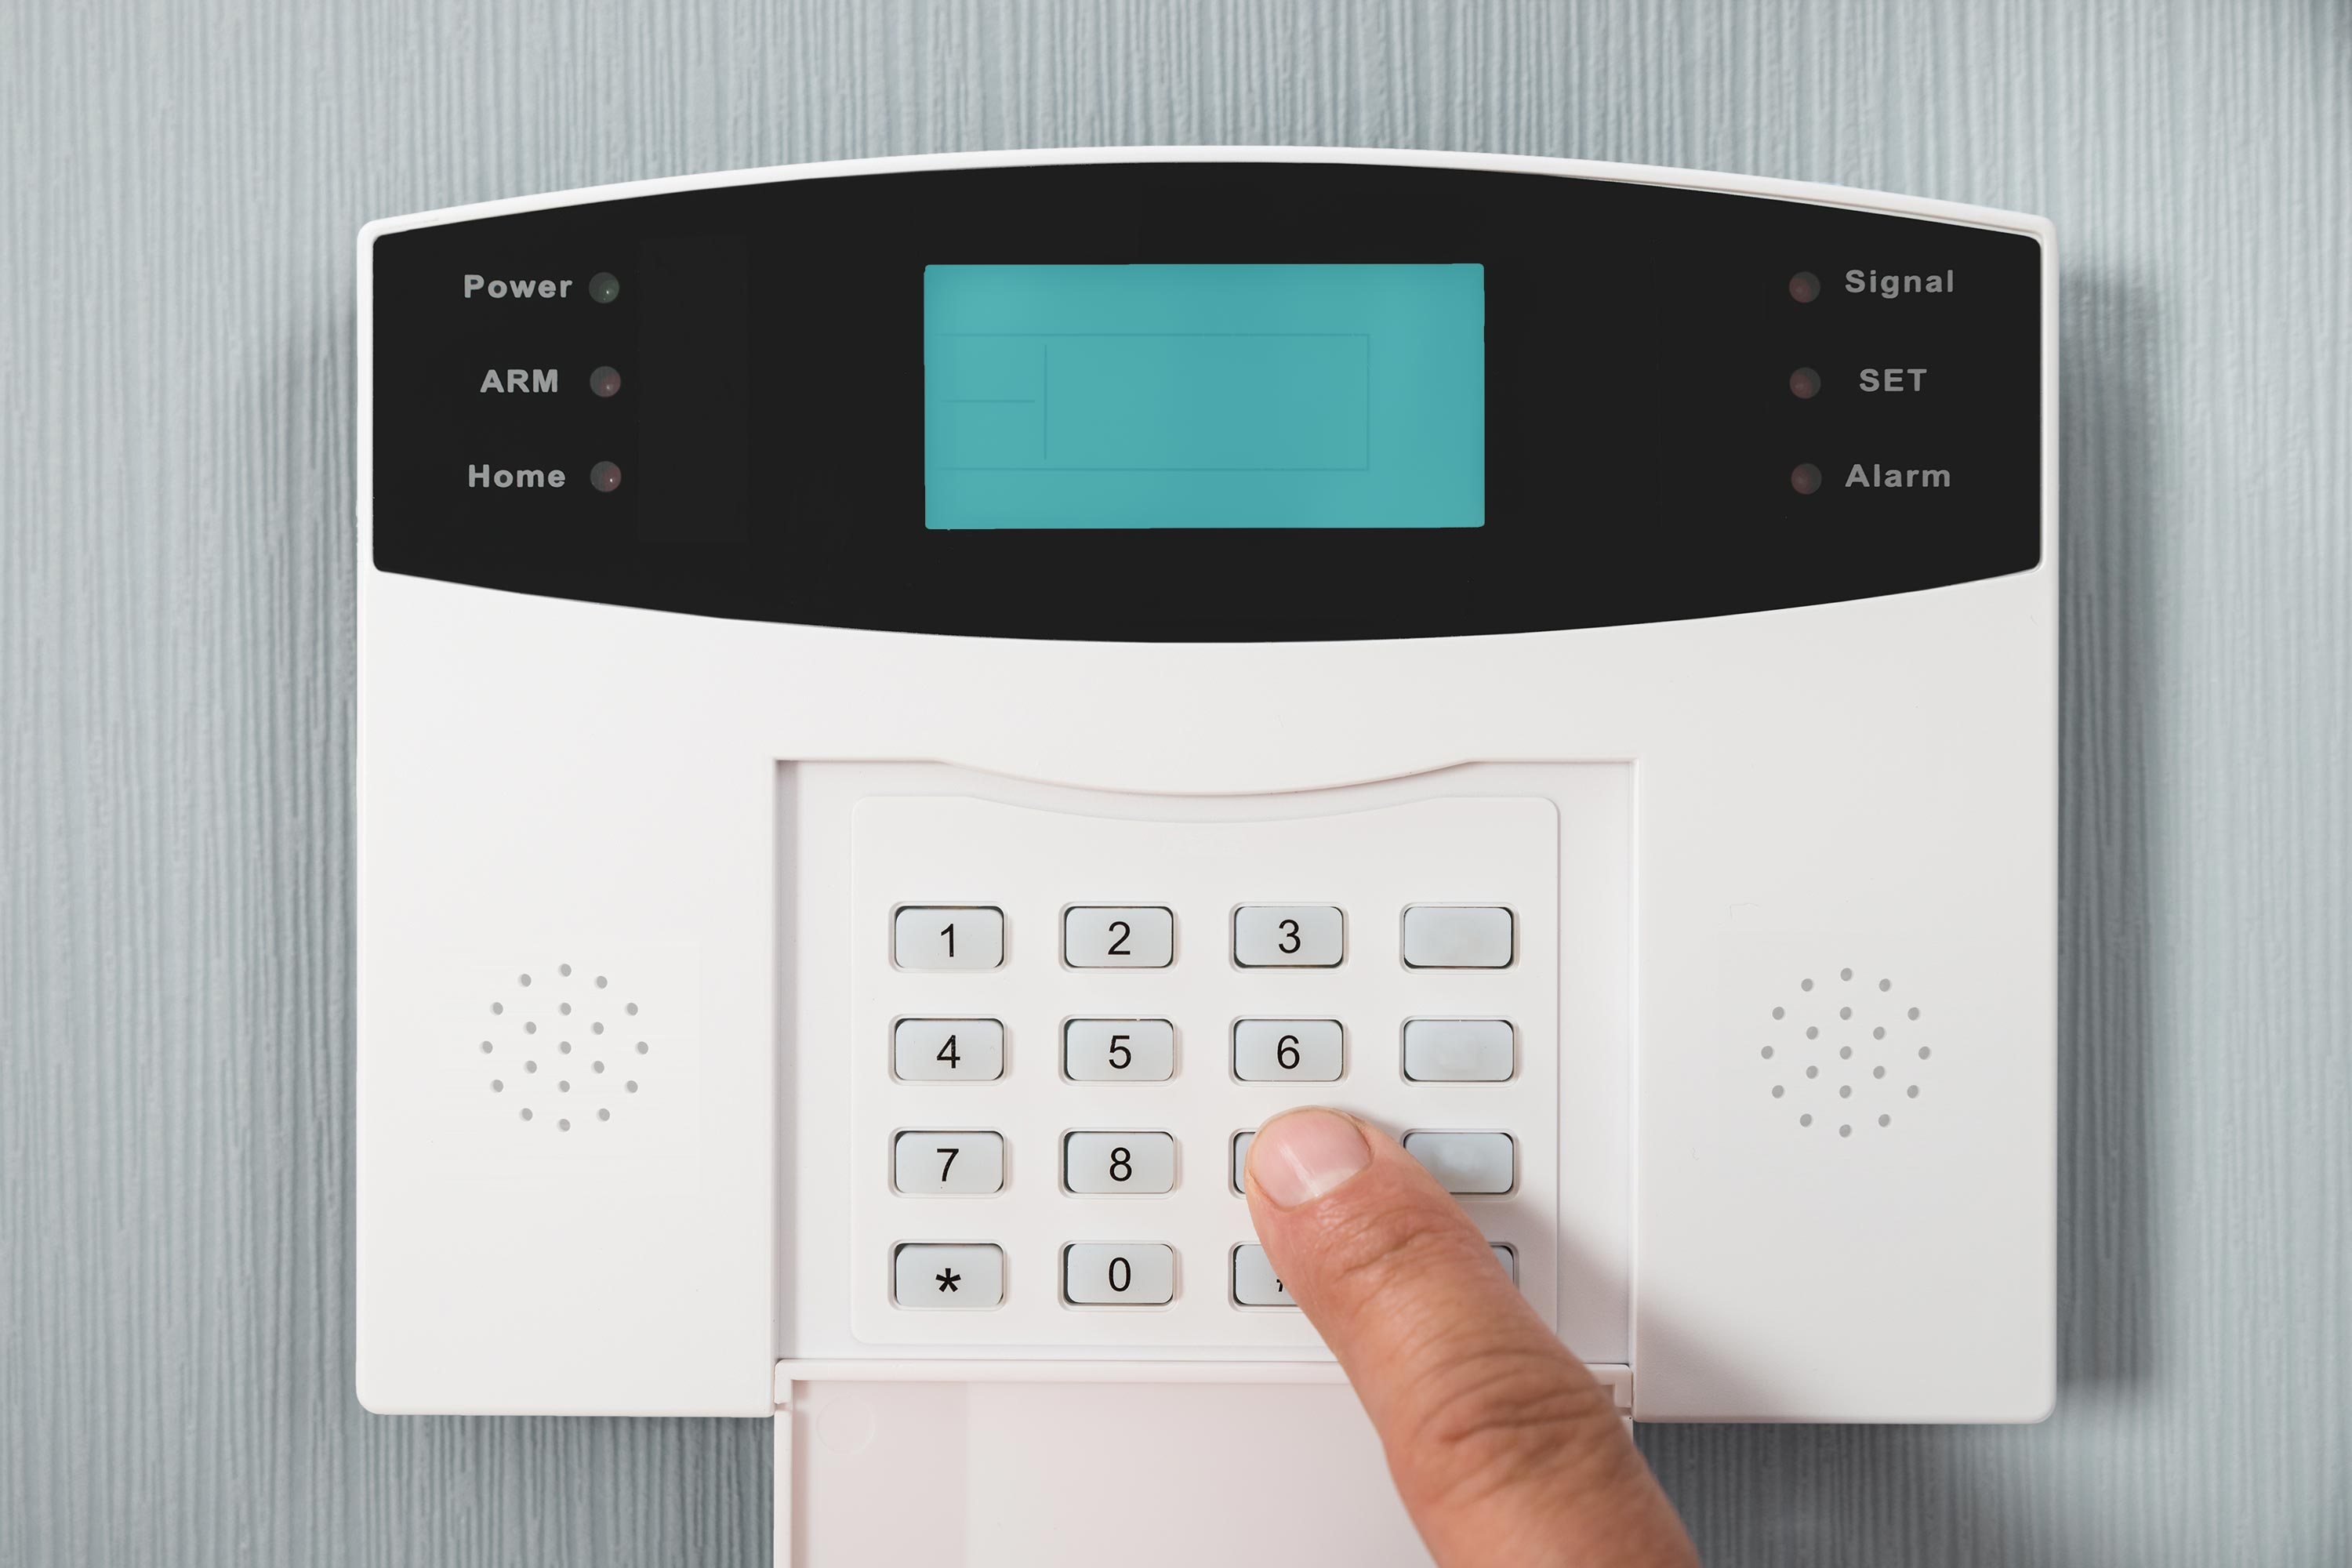 monitor claims security alarm confirm tulsa employee departures arrivals visually comp customer evidence identify system s workman witness home employees garage and for traffic